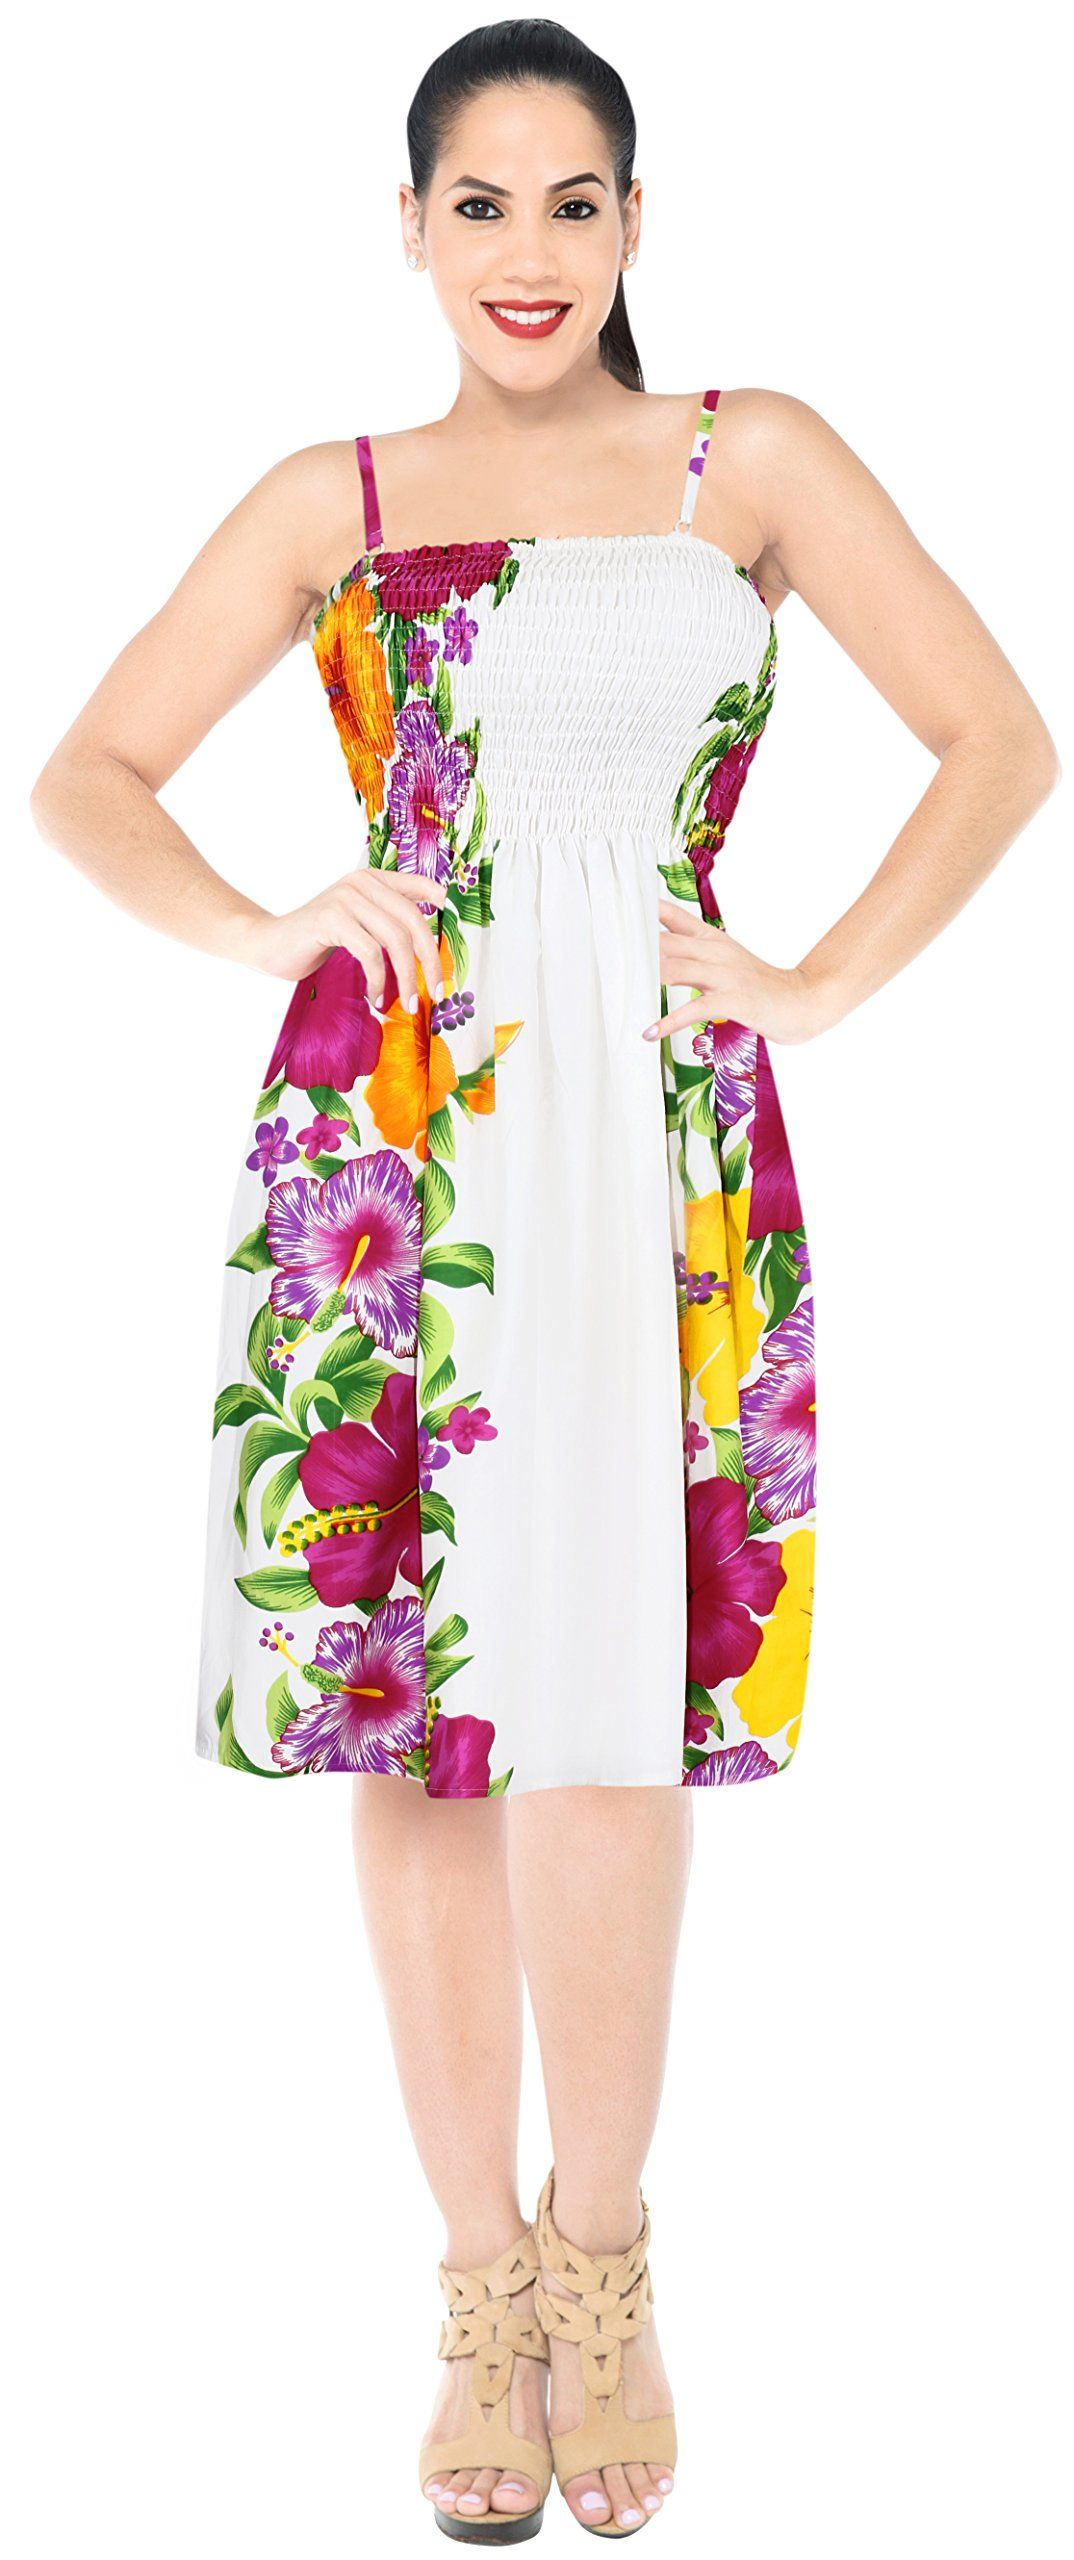 4ad95decb30a Maternity Outfits - casual maternity maxi dress   La Leela Womens Beach  Short Tube Dress Elasticated Hibiscus Orange Pink White     Read more at  the picture ...